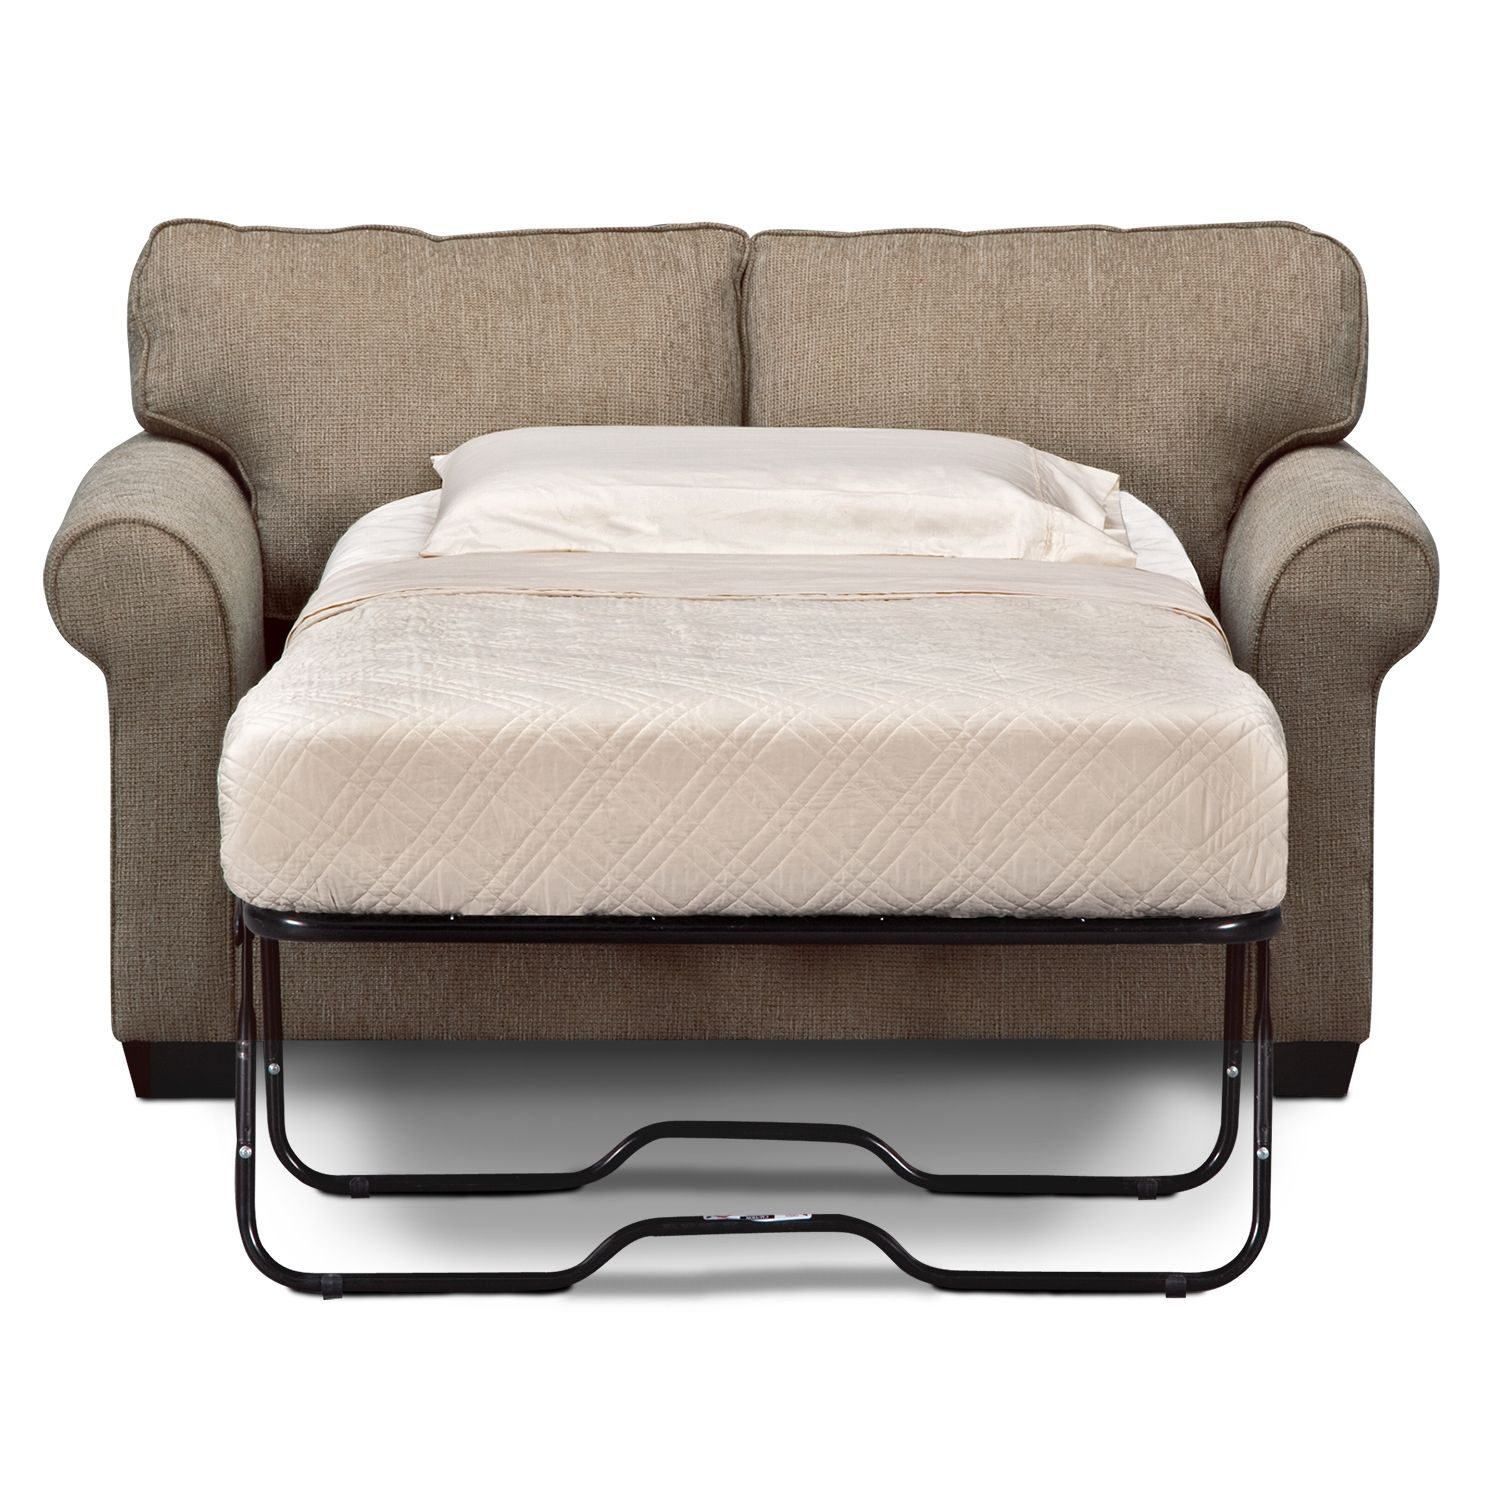 Illustration Of Twin Size Sleeper Sofa Loveseat Sleeper Sofa Loveseat Sofa Bed Sofa Bed For Small Spaces